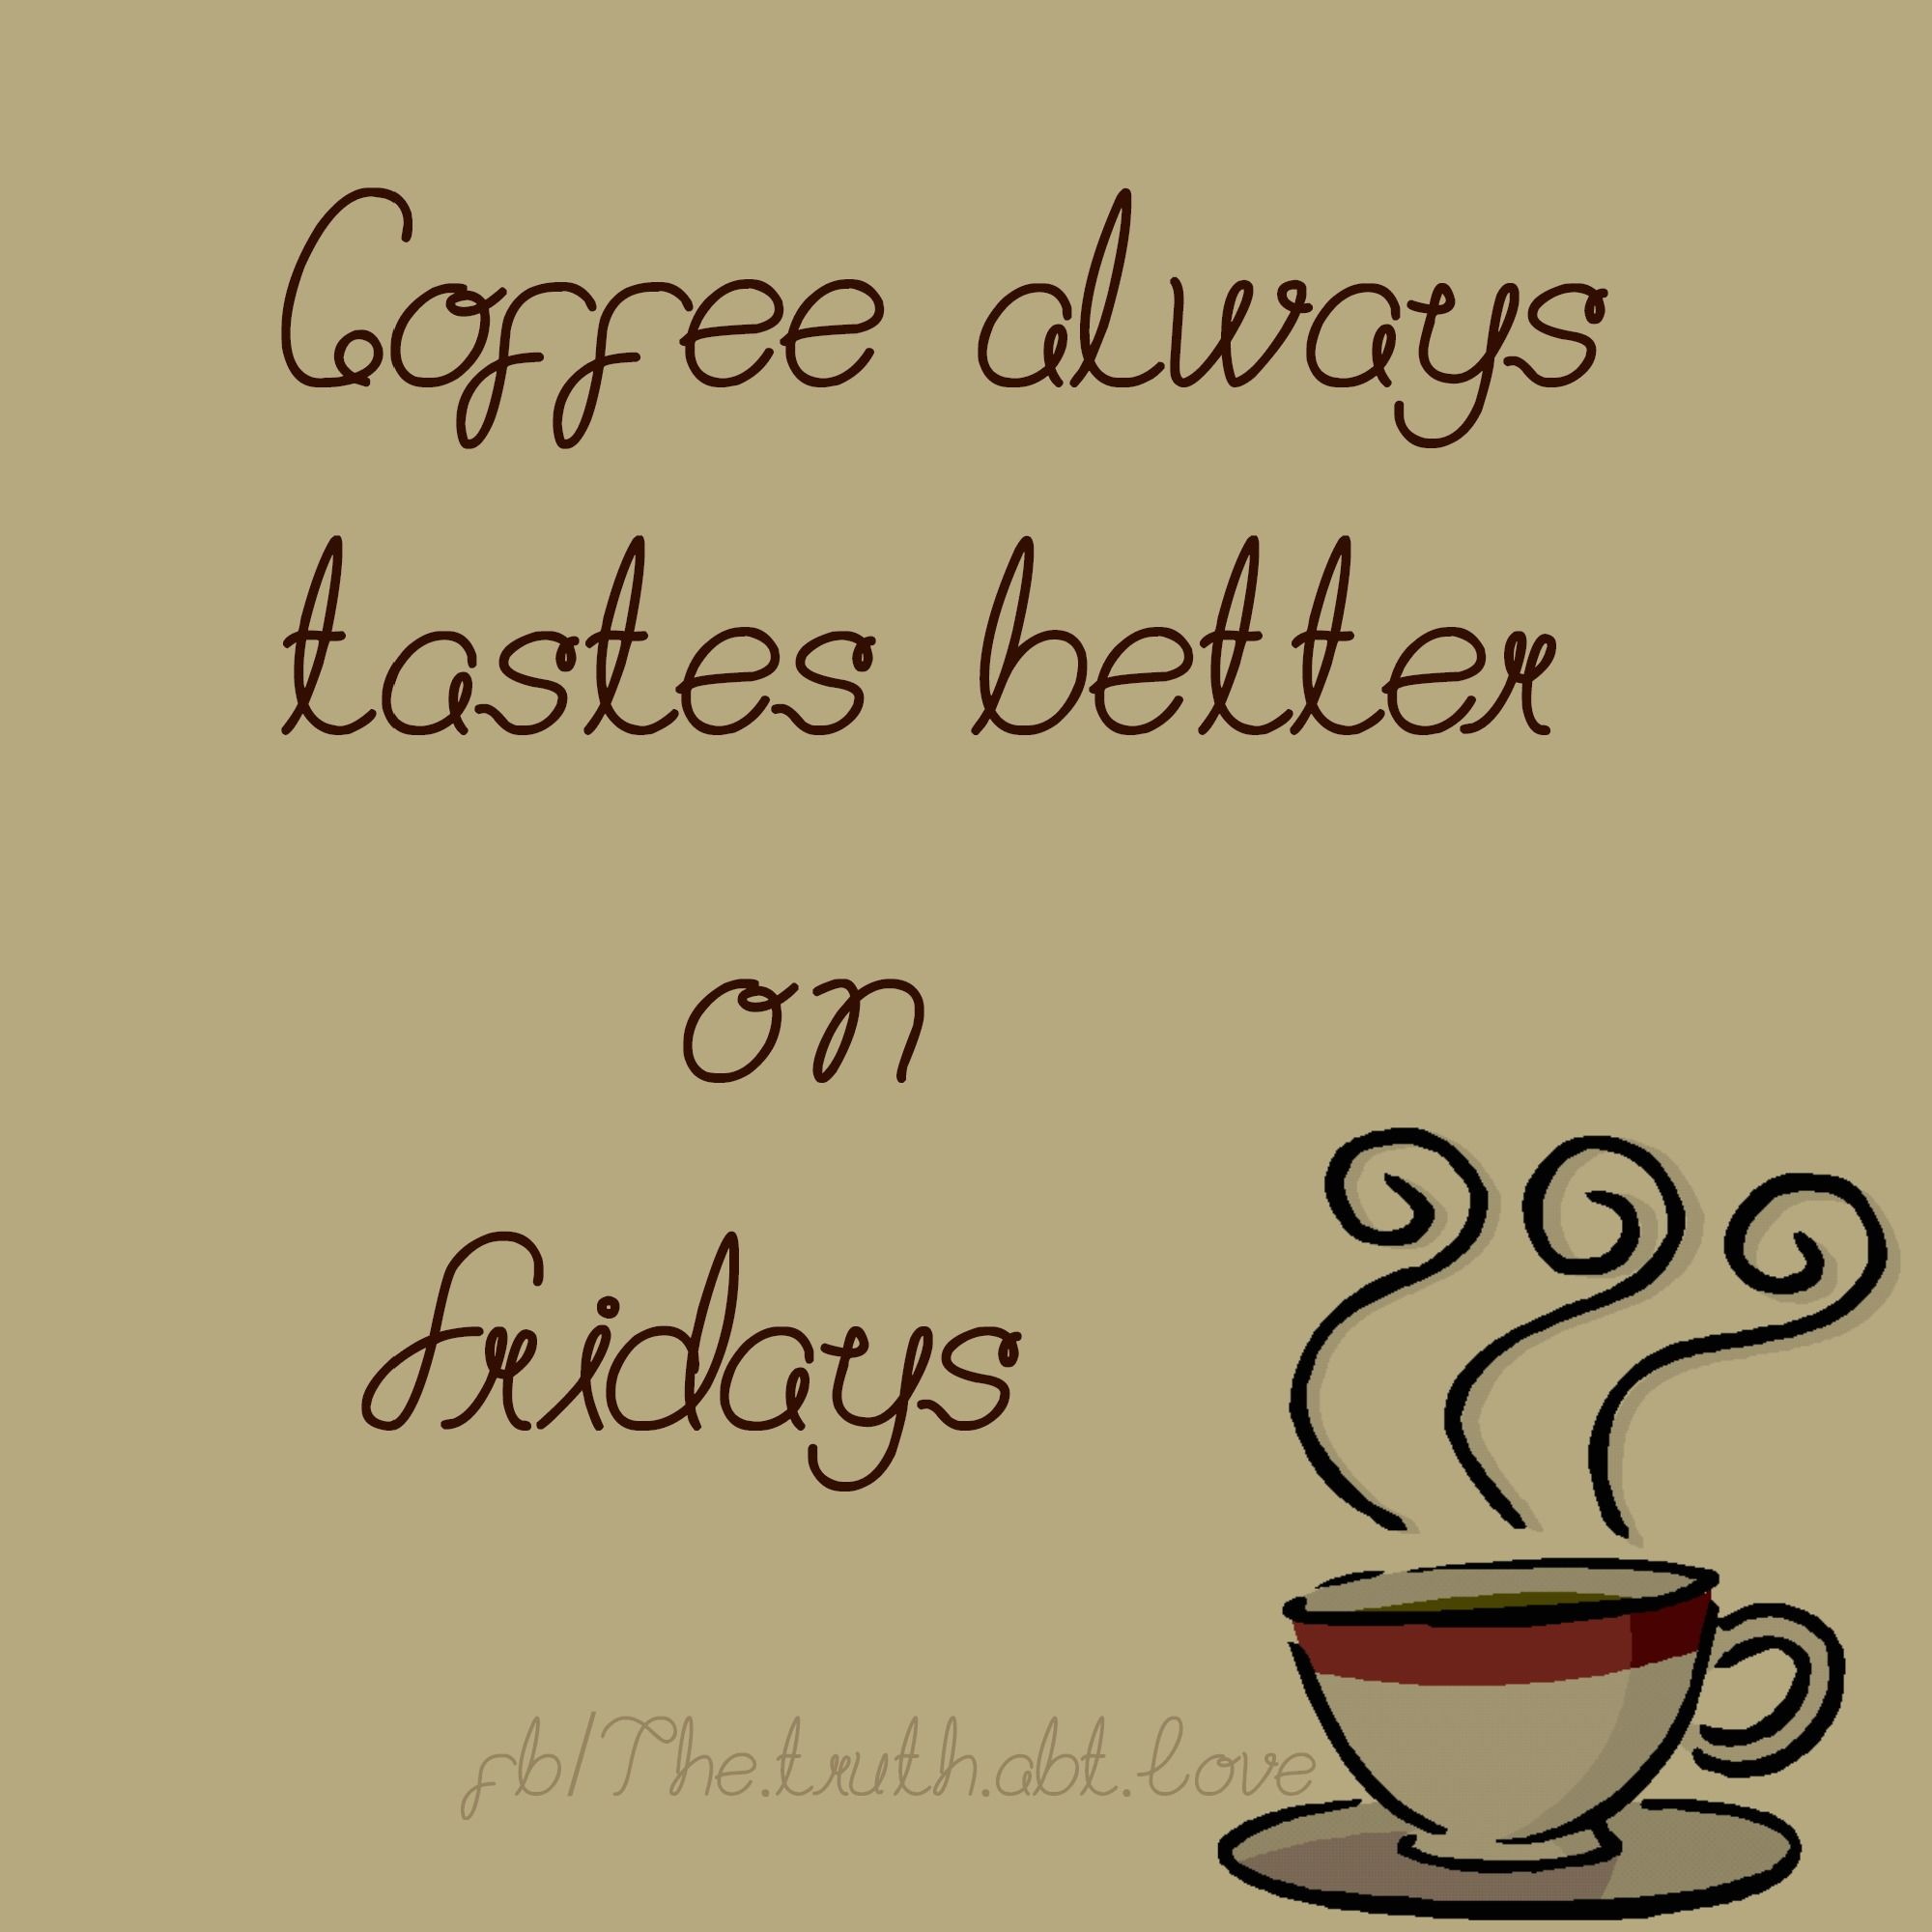 Friday Coffee Pictures, Photos, and Images for Facebook, Tumblr ... #coffeeTime